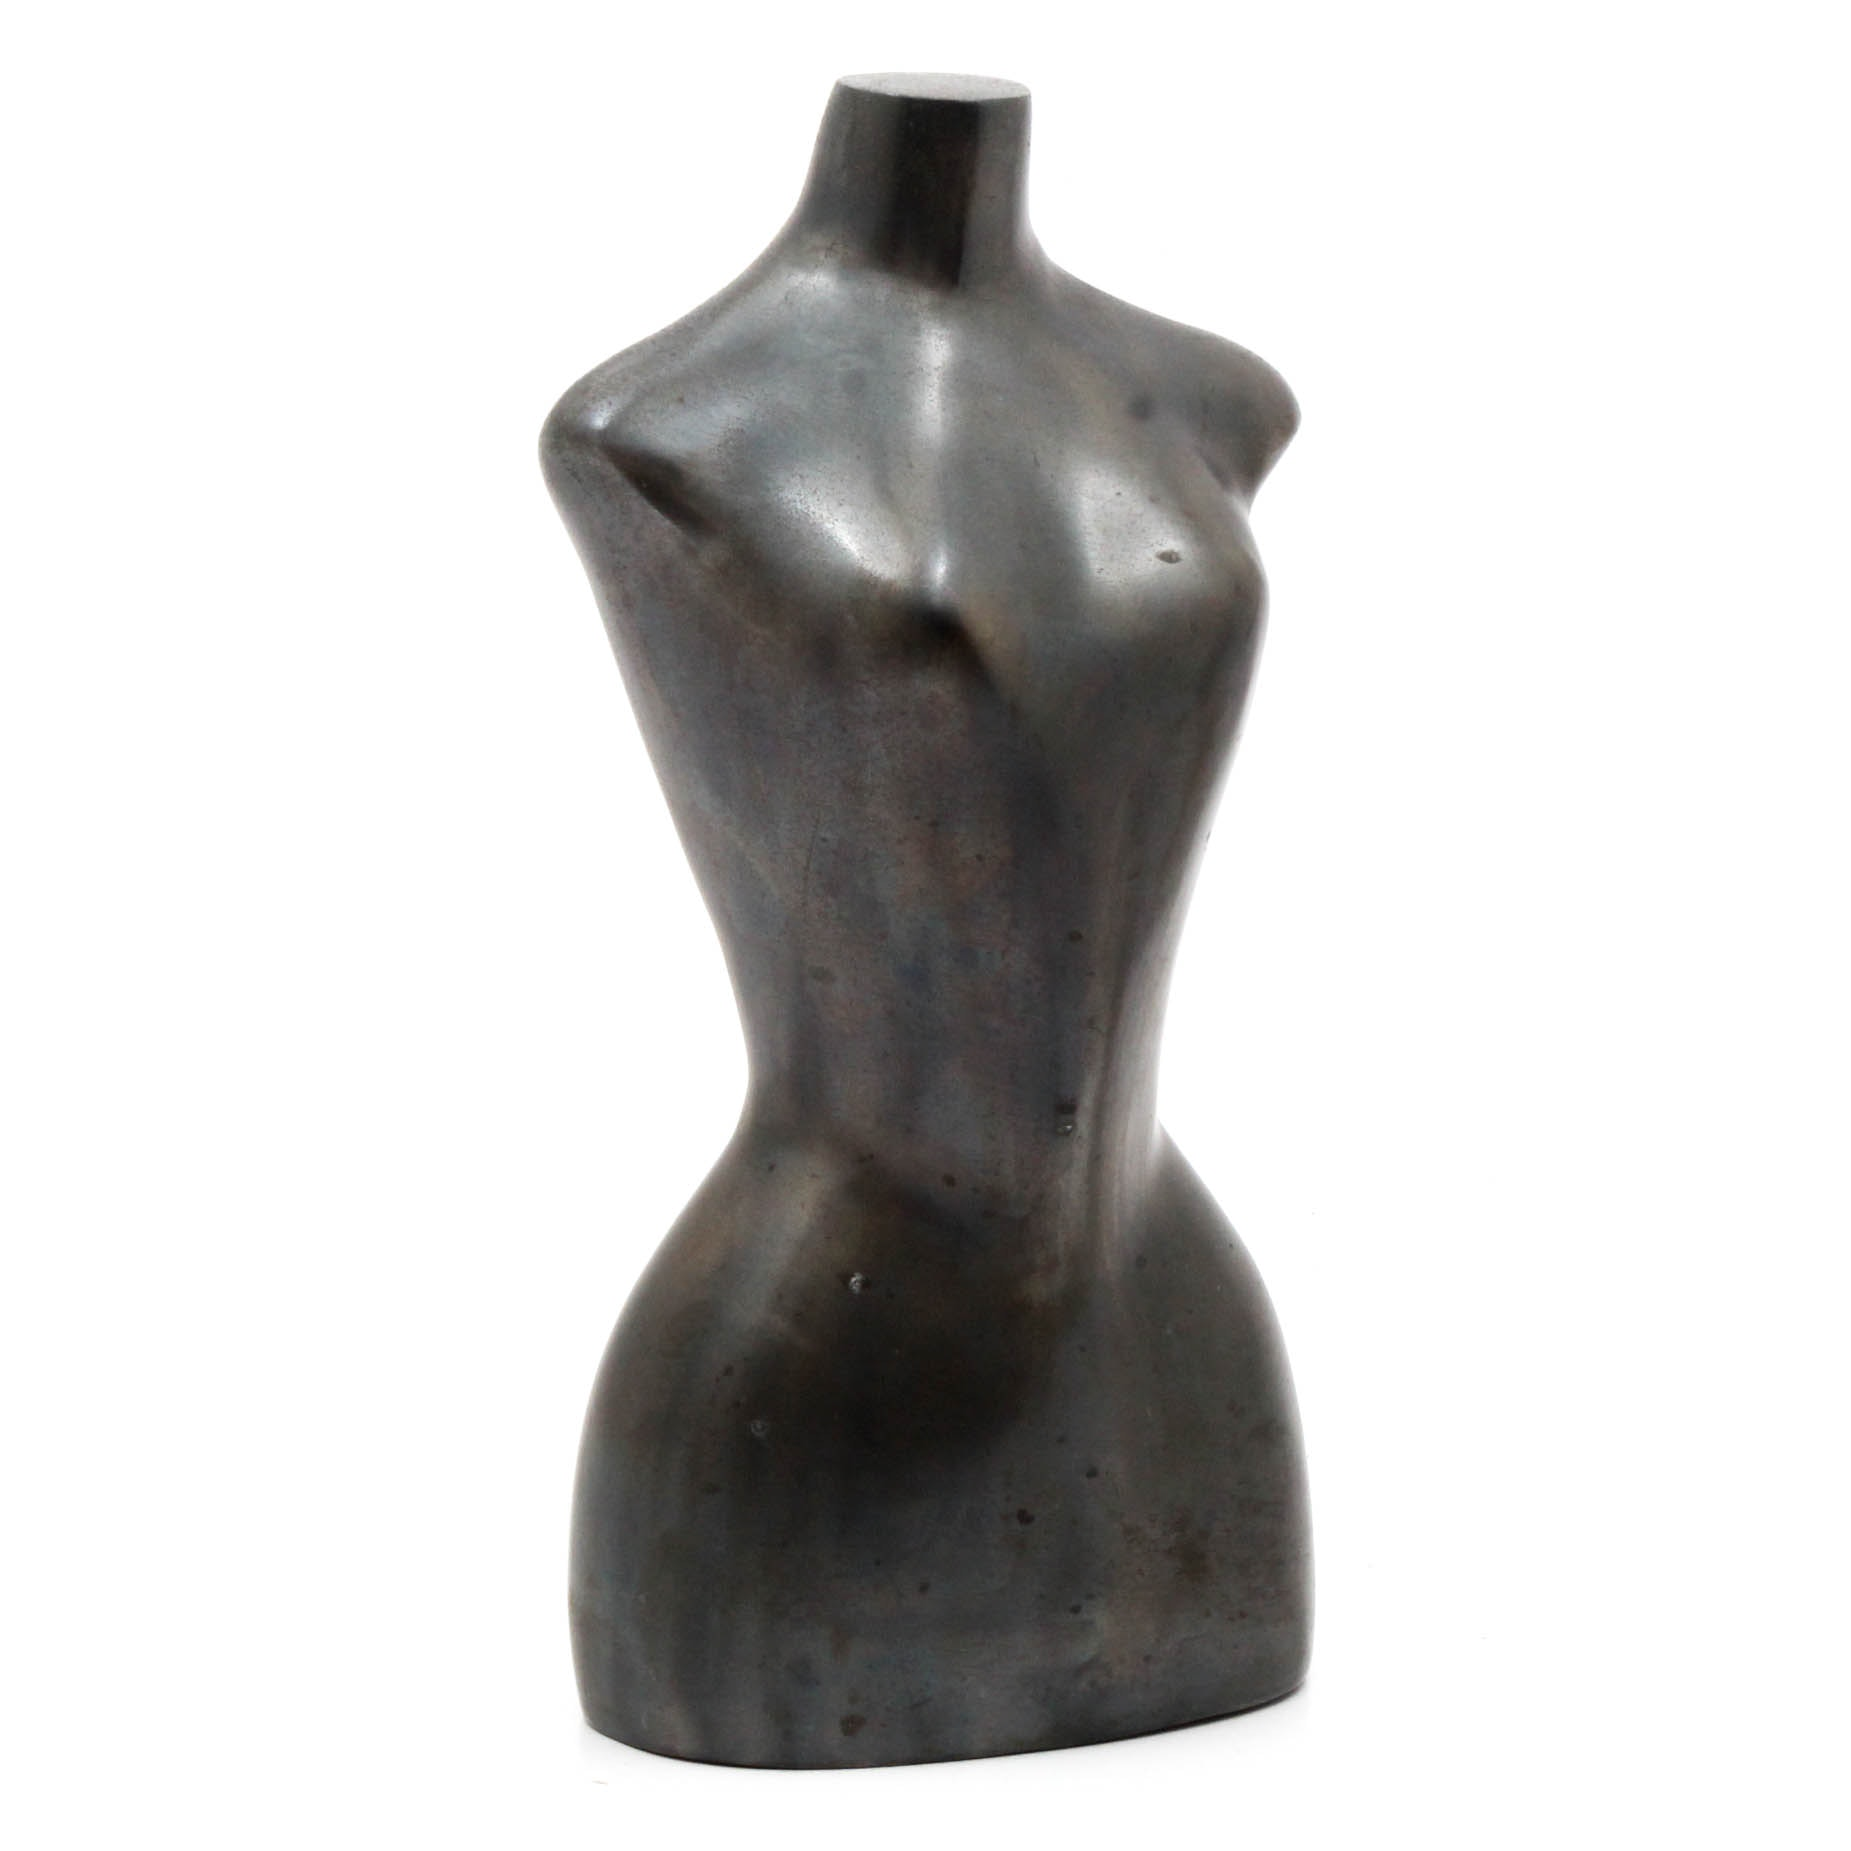 Cast Metal Nude Female Sculpture